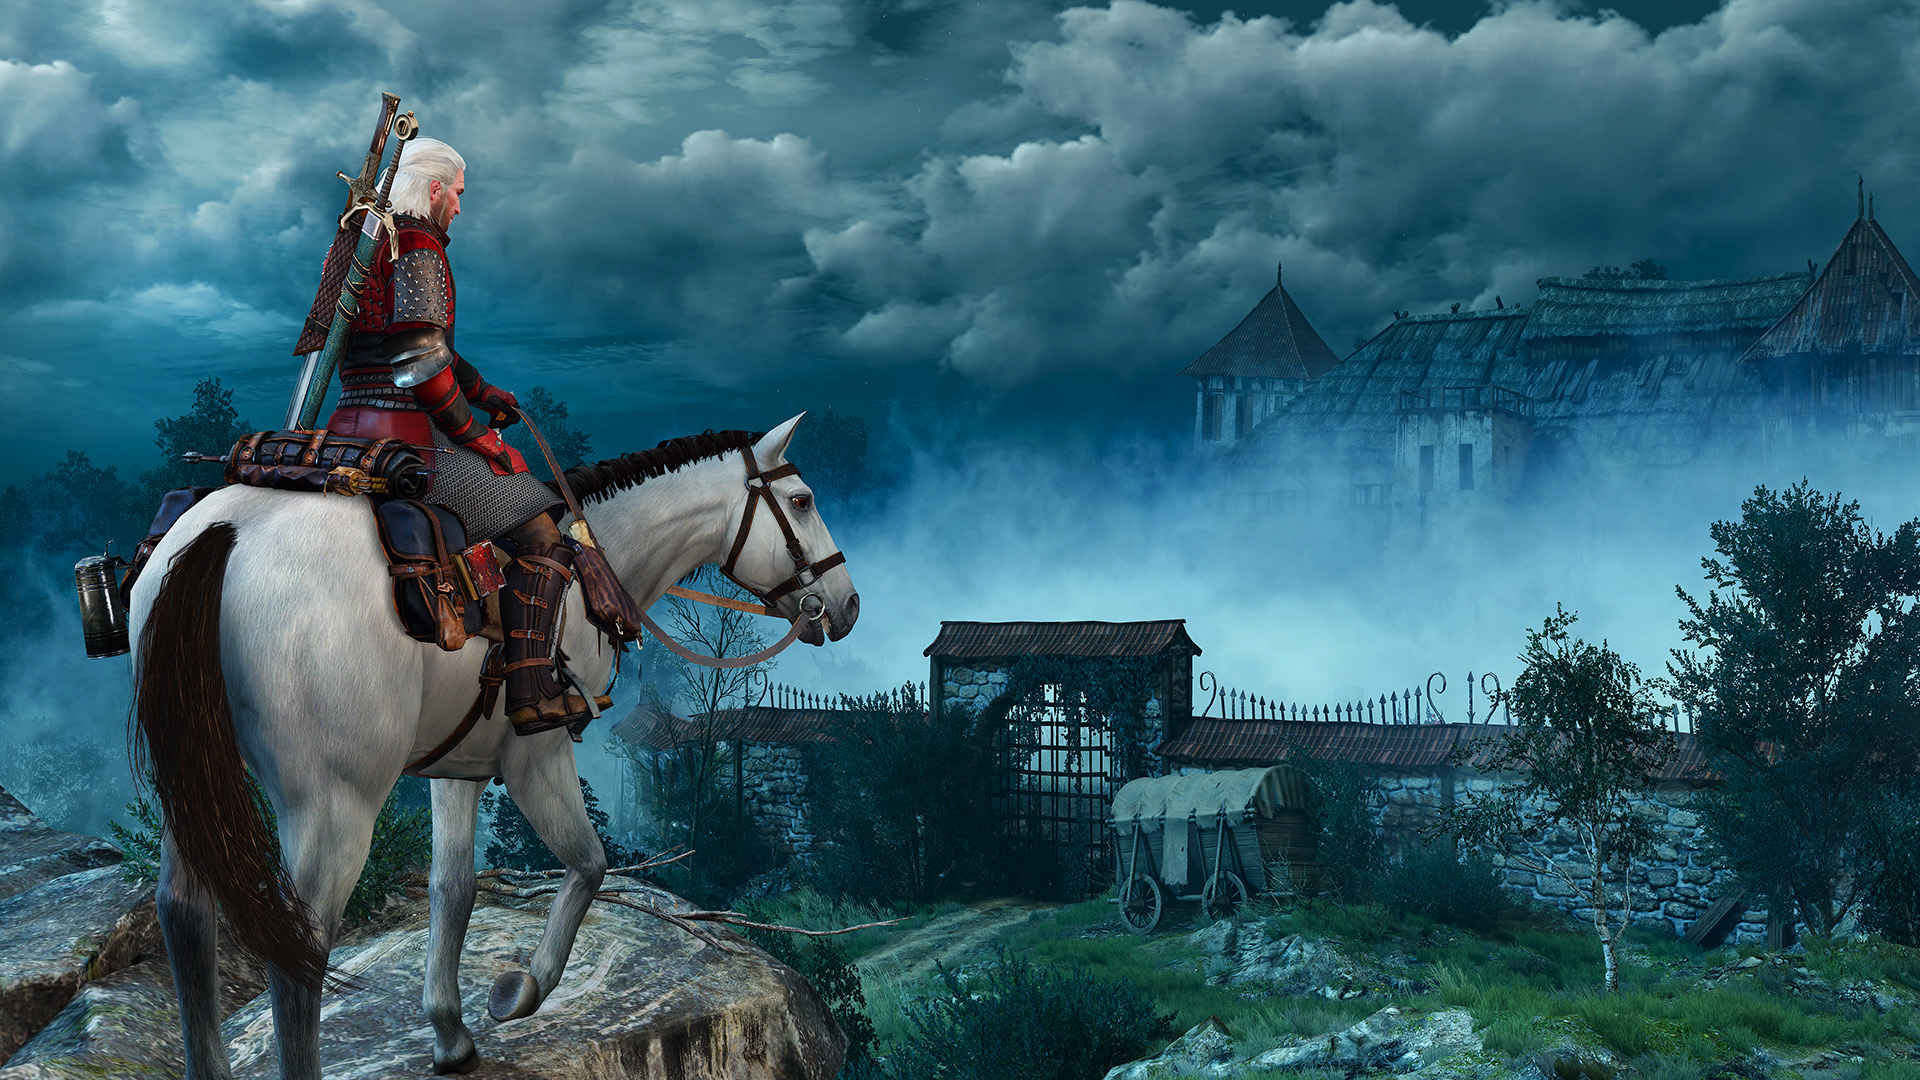 The witcher 3 hearts of stone secondary quest guide usgamer witcher 3 without a trace quest walkthrough solutioingenieria Image collections